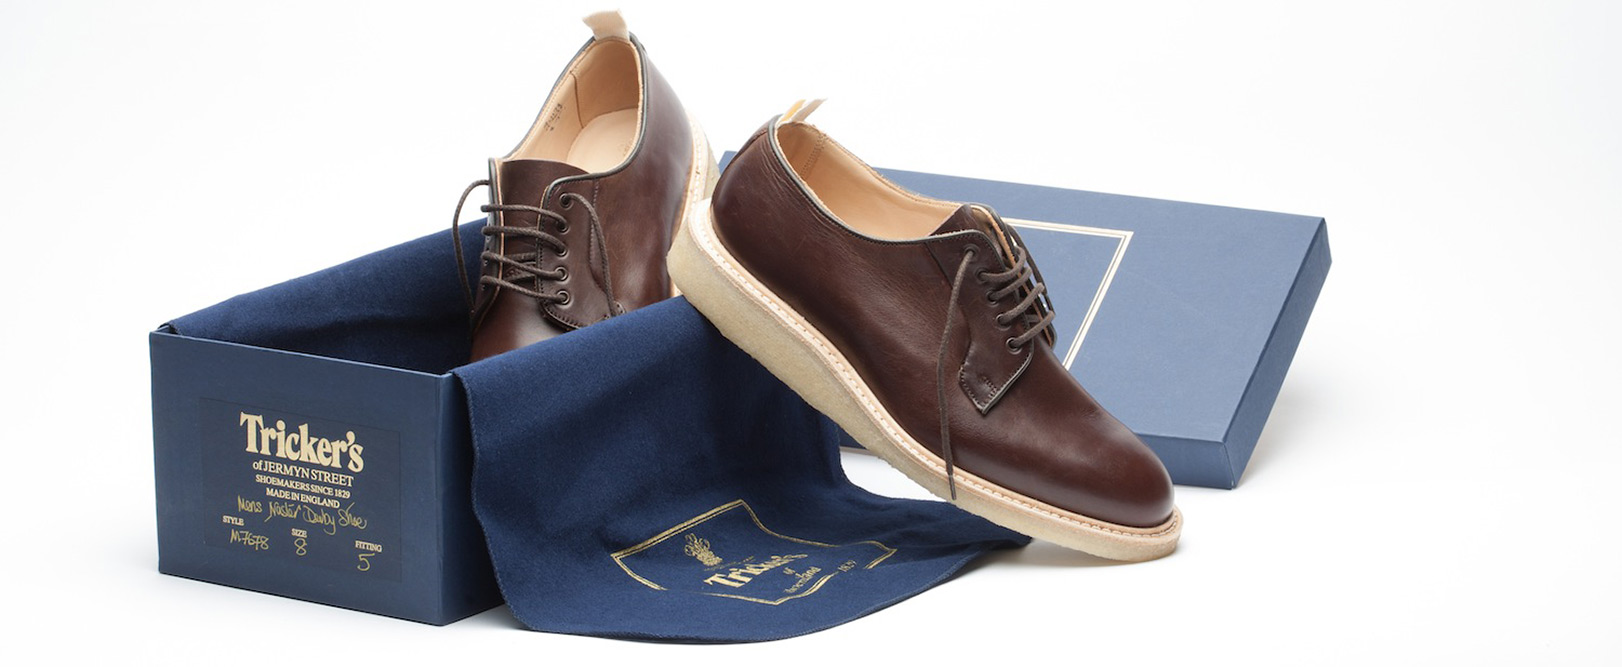 trickers-norseprojects-blucher-shoes-2